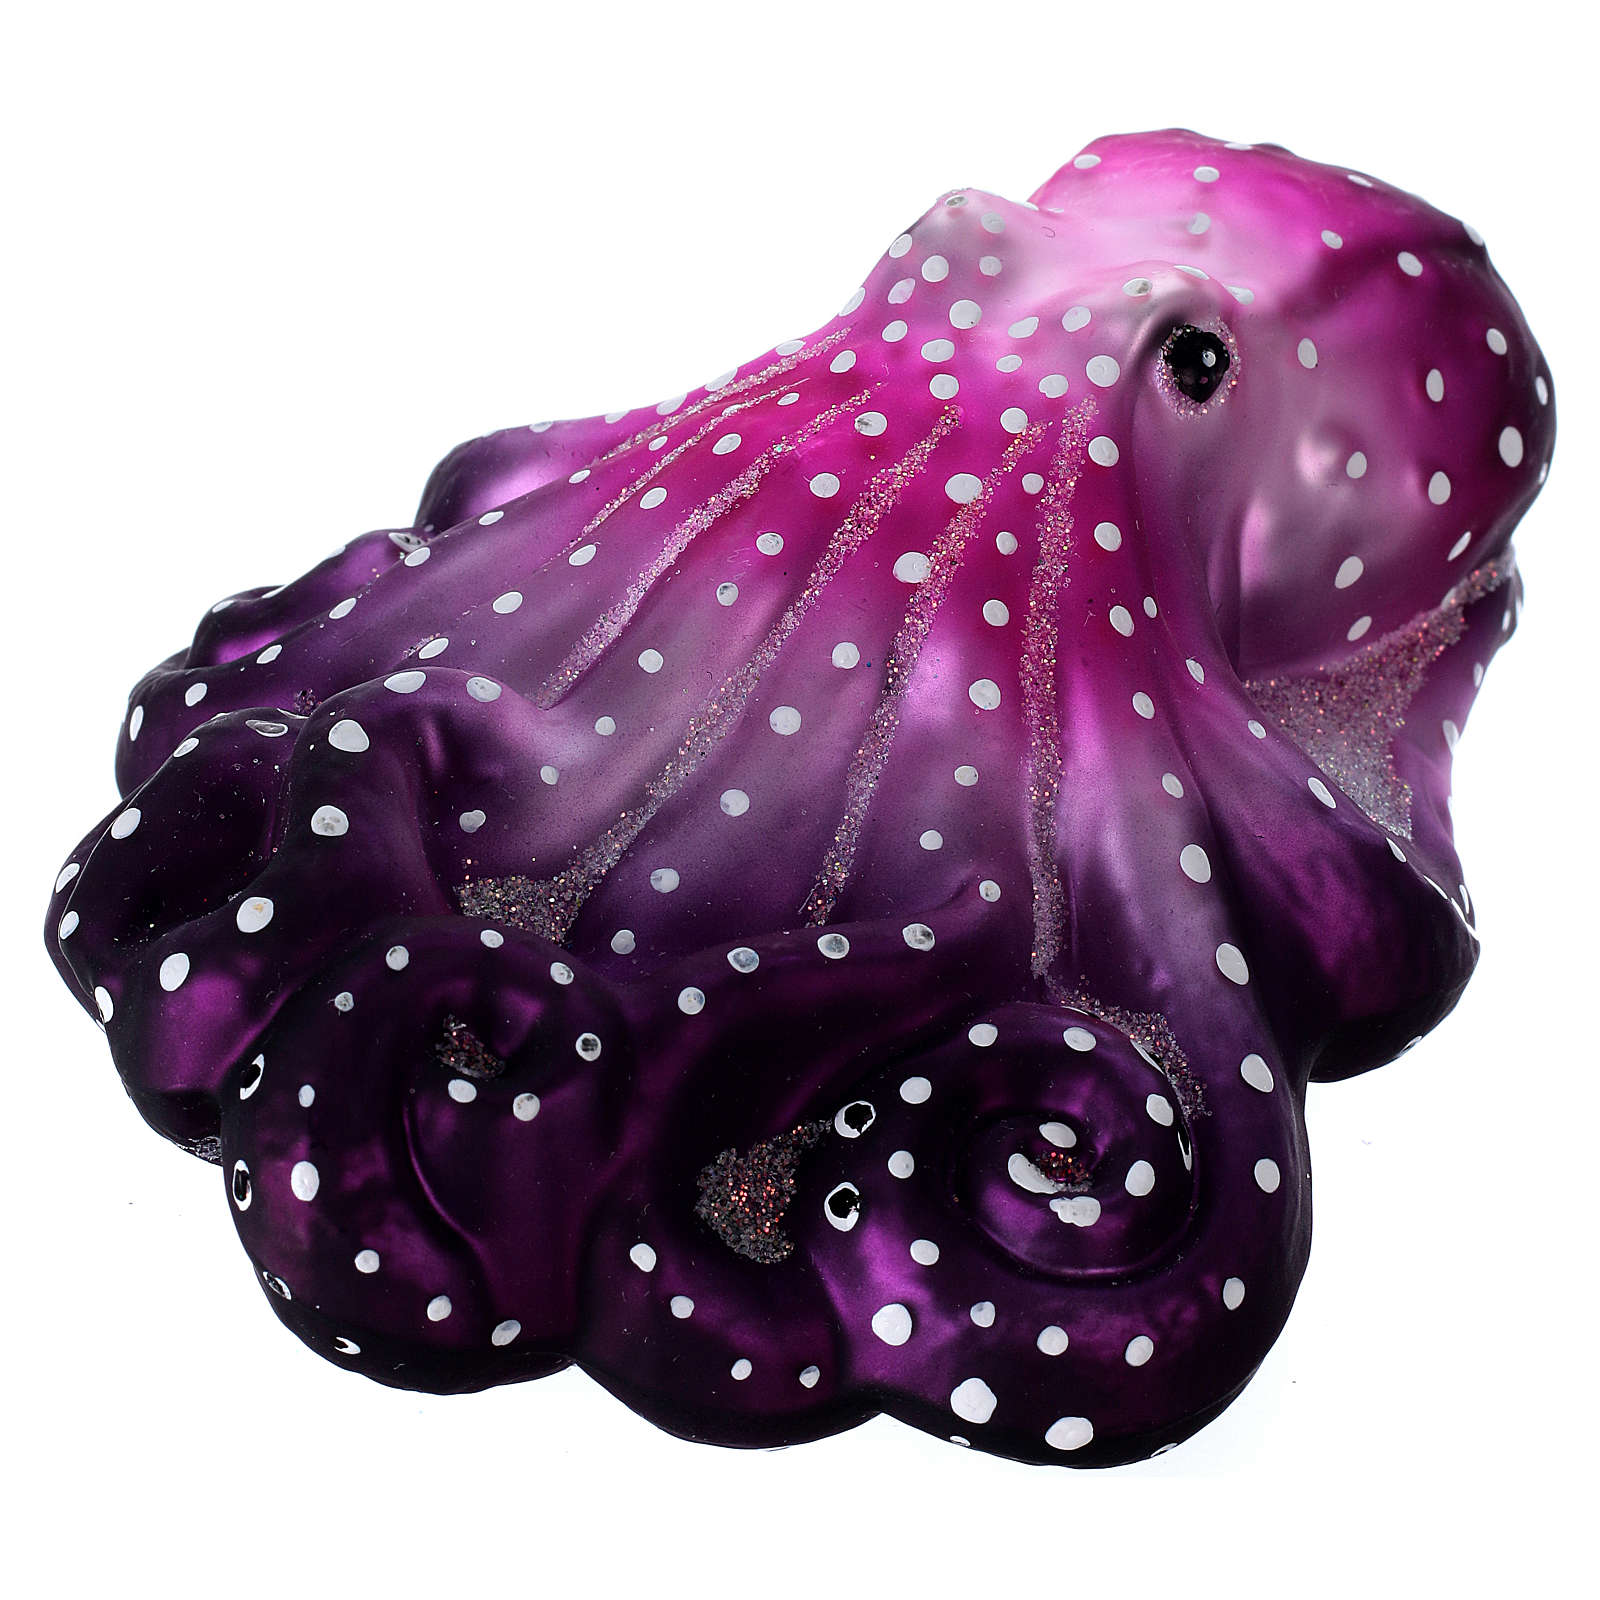 Purple octopus in blown glass for Christmas Tree 4